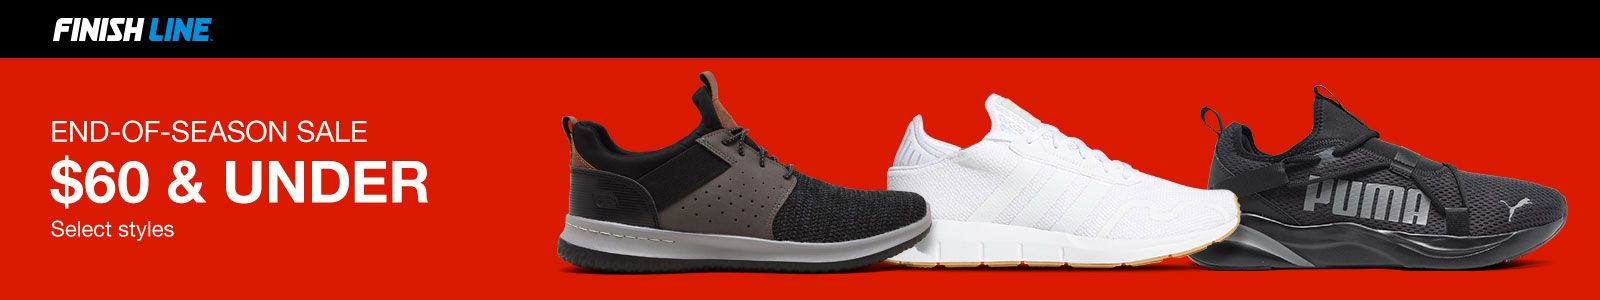 Finish Line, End-Of-Season Sale, $60 and Under, Select styles